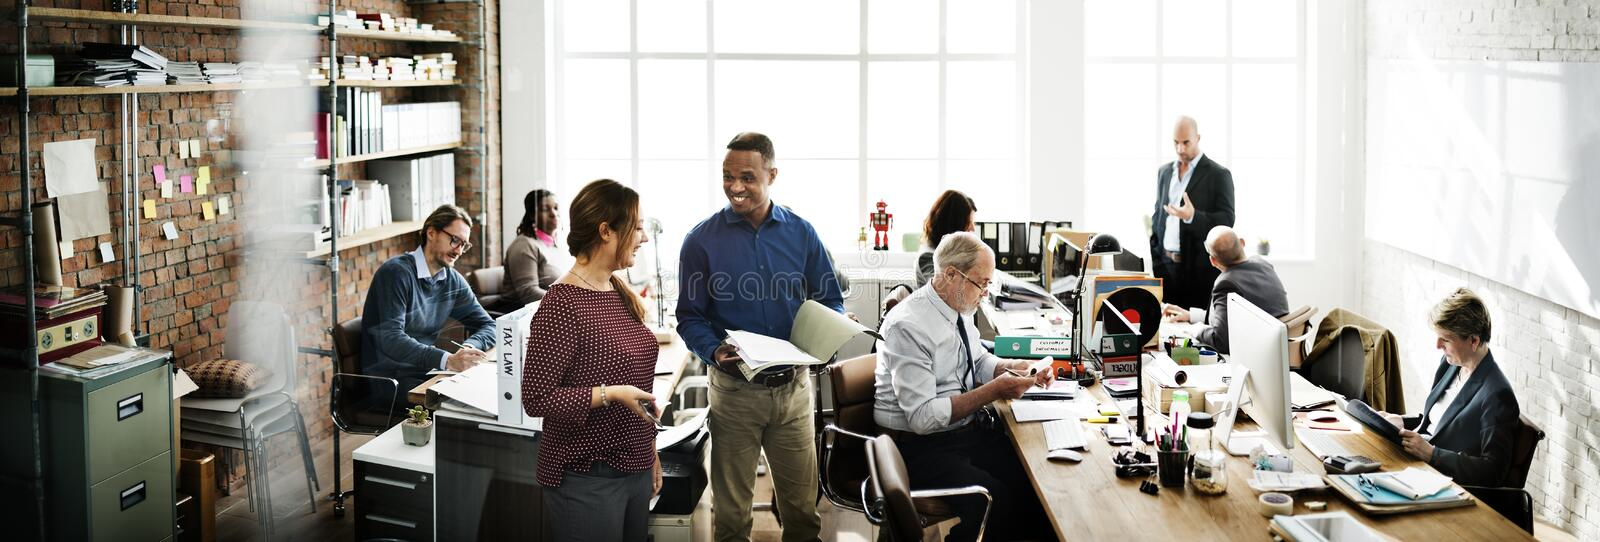 Business Team Working Office Worker Concept royalty free stock photo